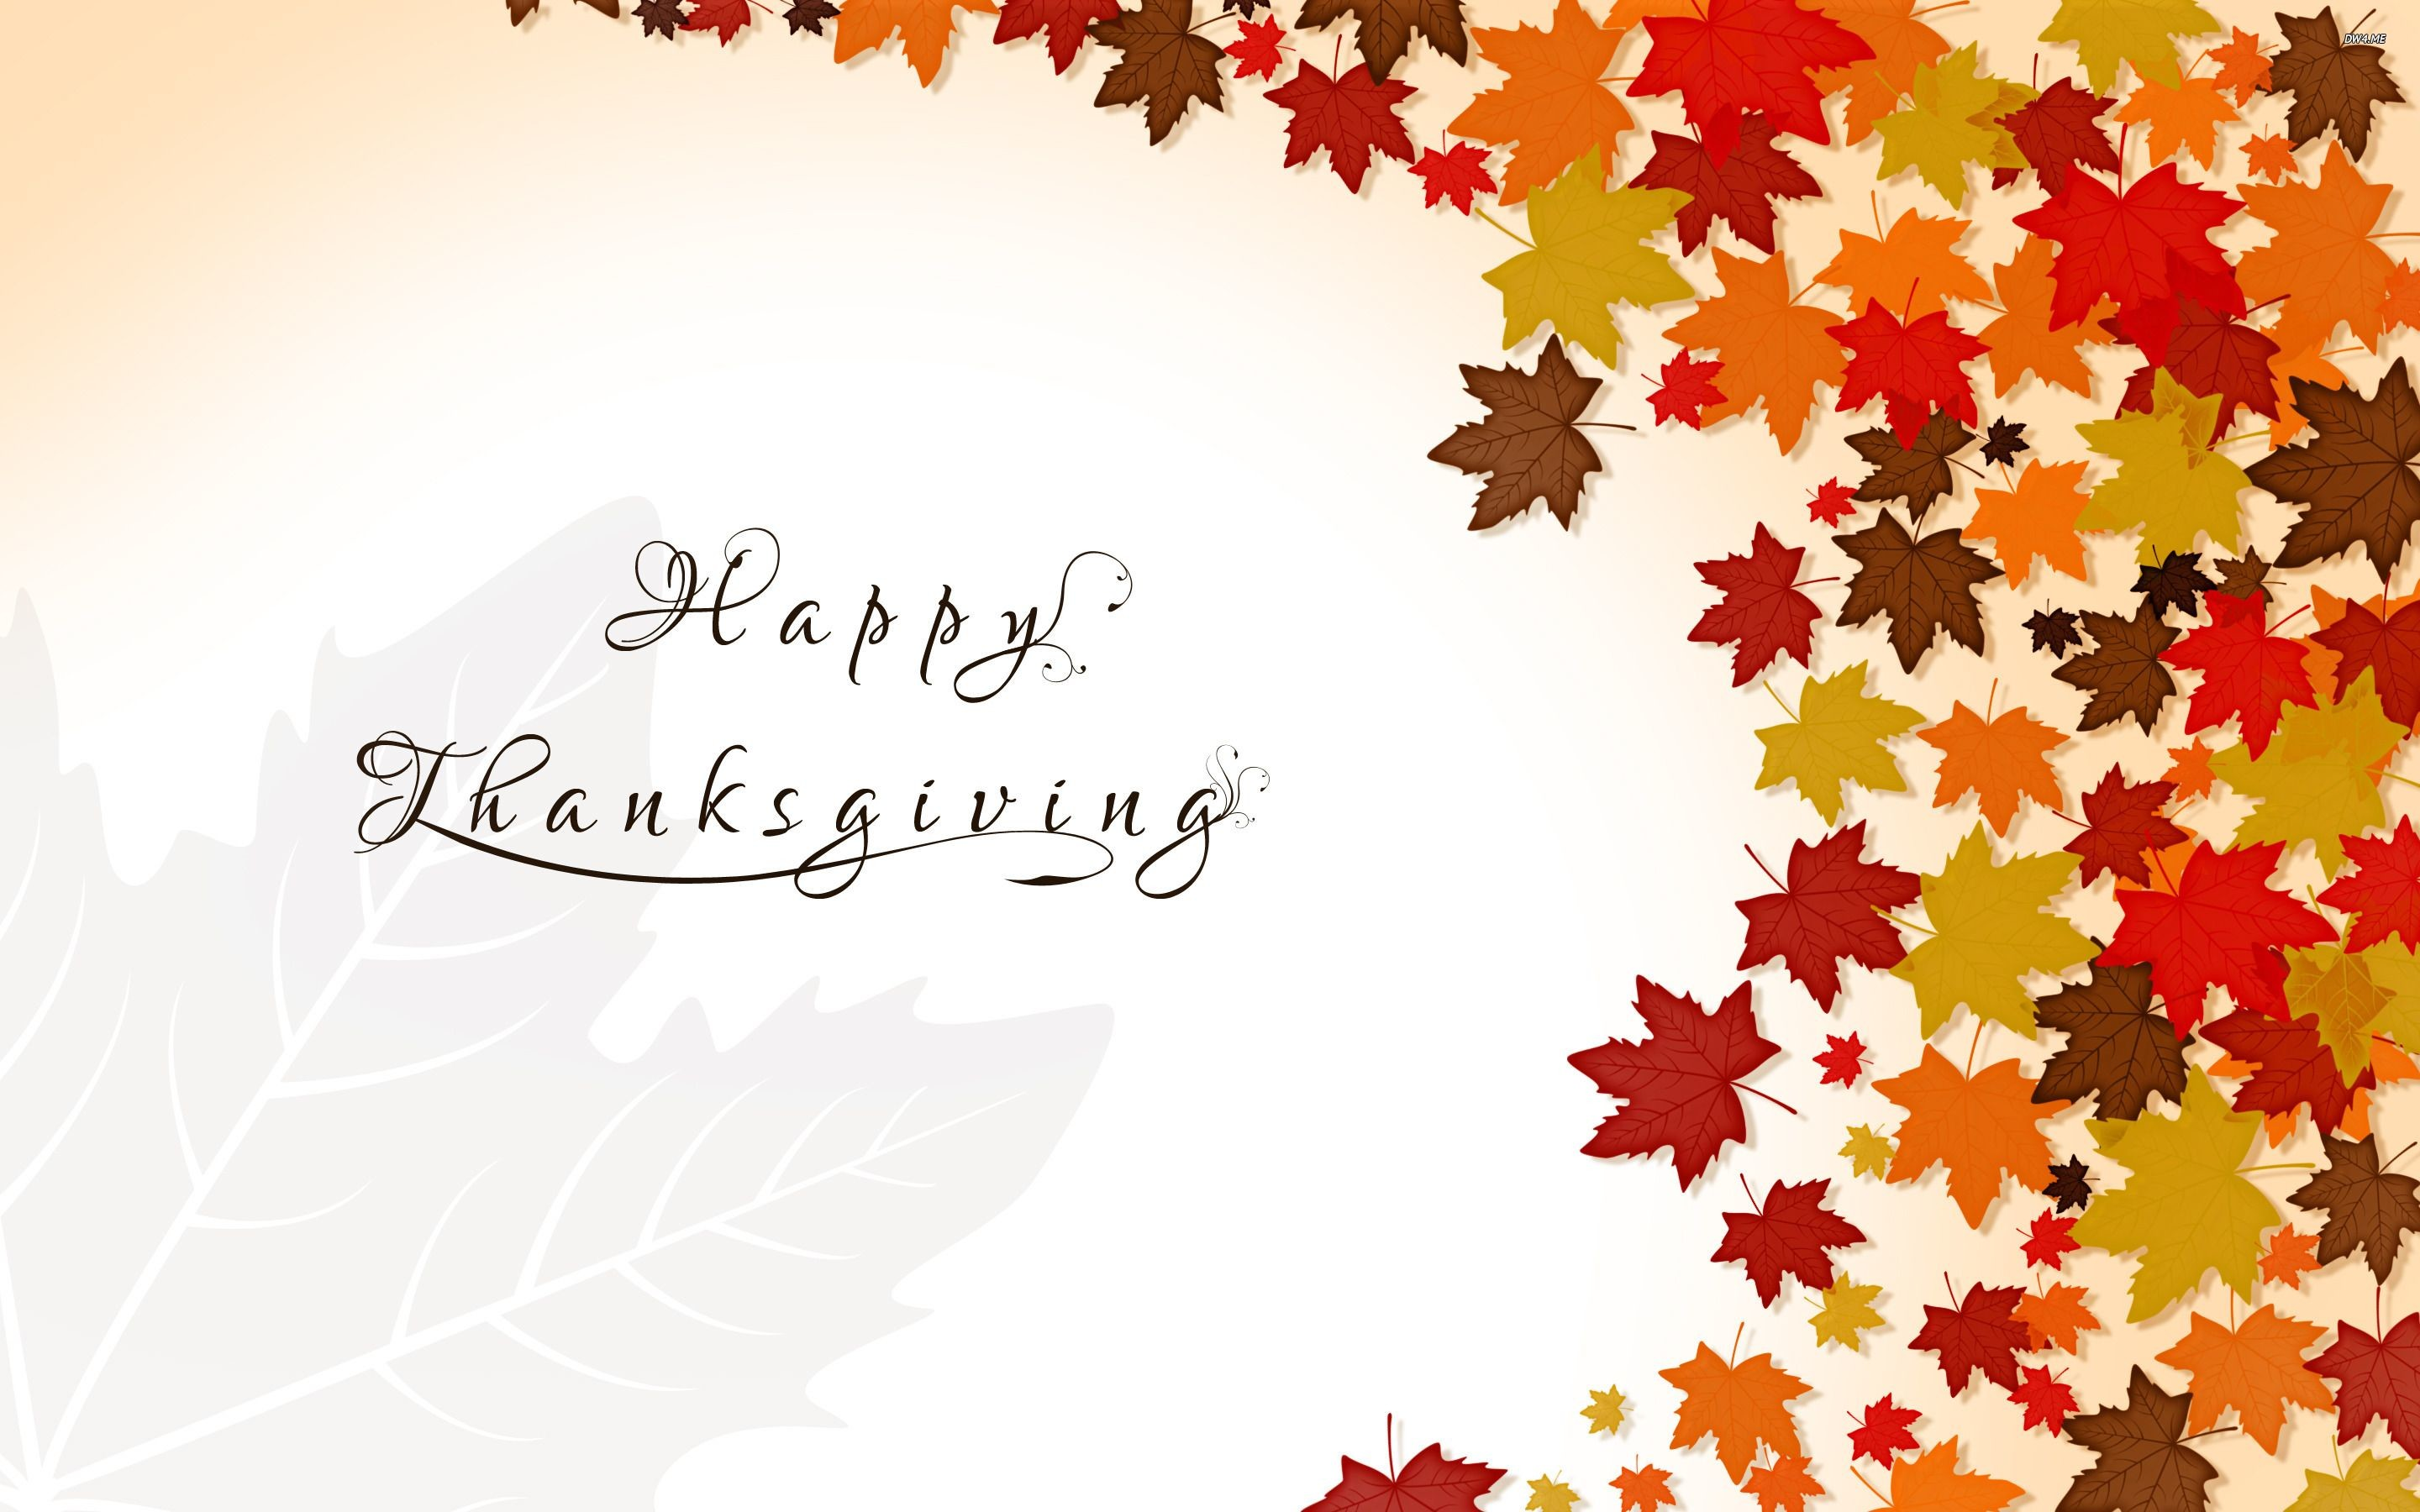 Cute Thanksgiving Wallpapers for Desktop   3D Wallpapers   Pinterest   Thanksgiving  wallpaper, Wallpaper and Wallpapers android